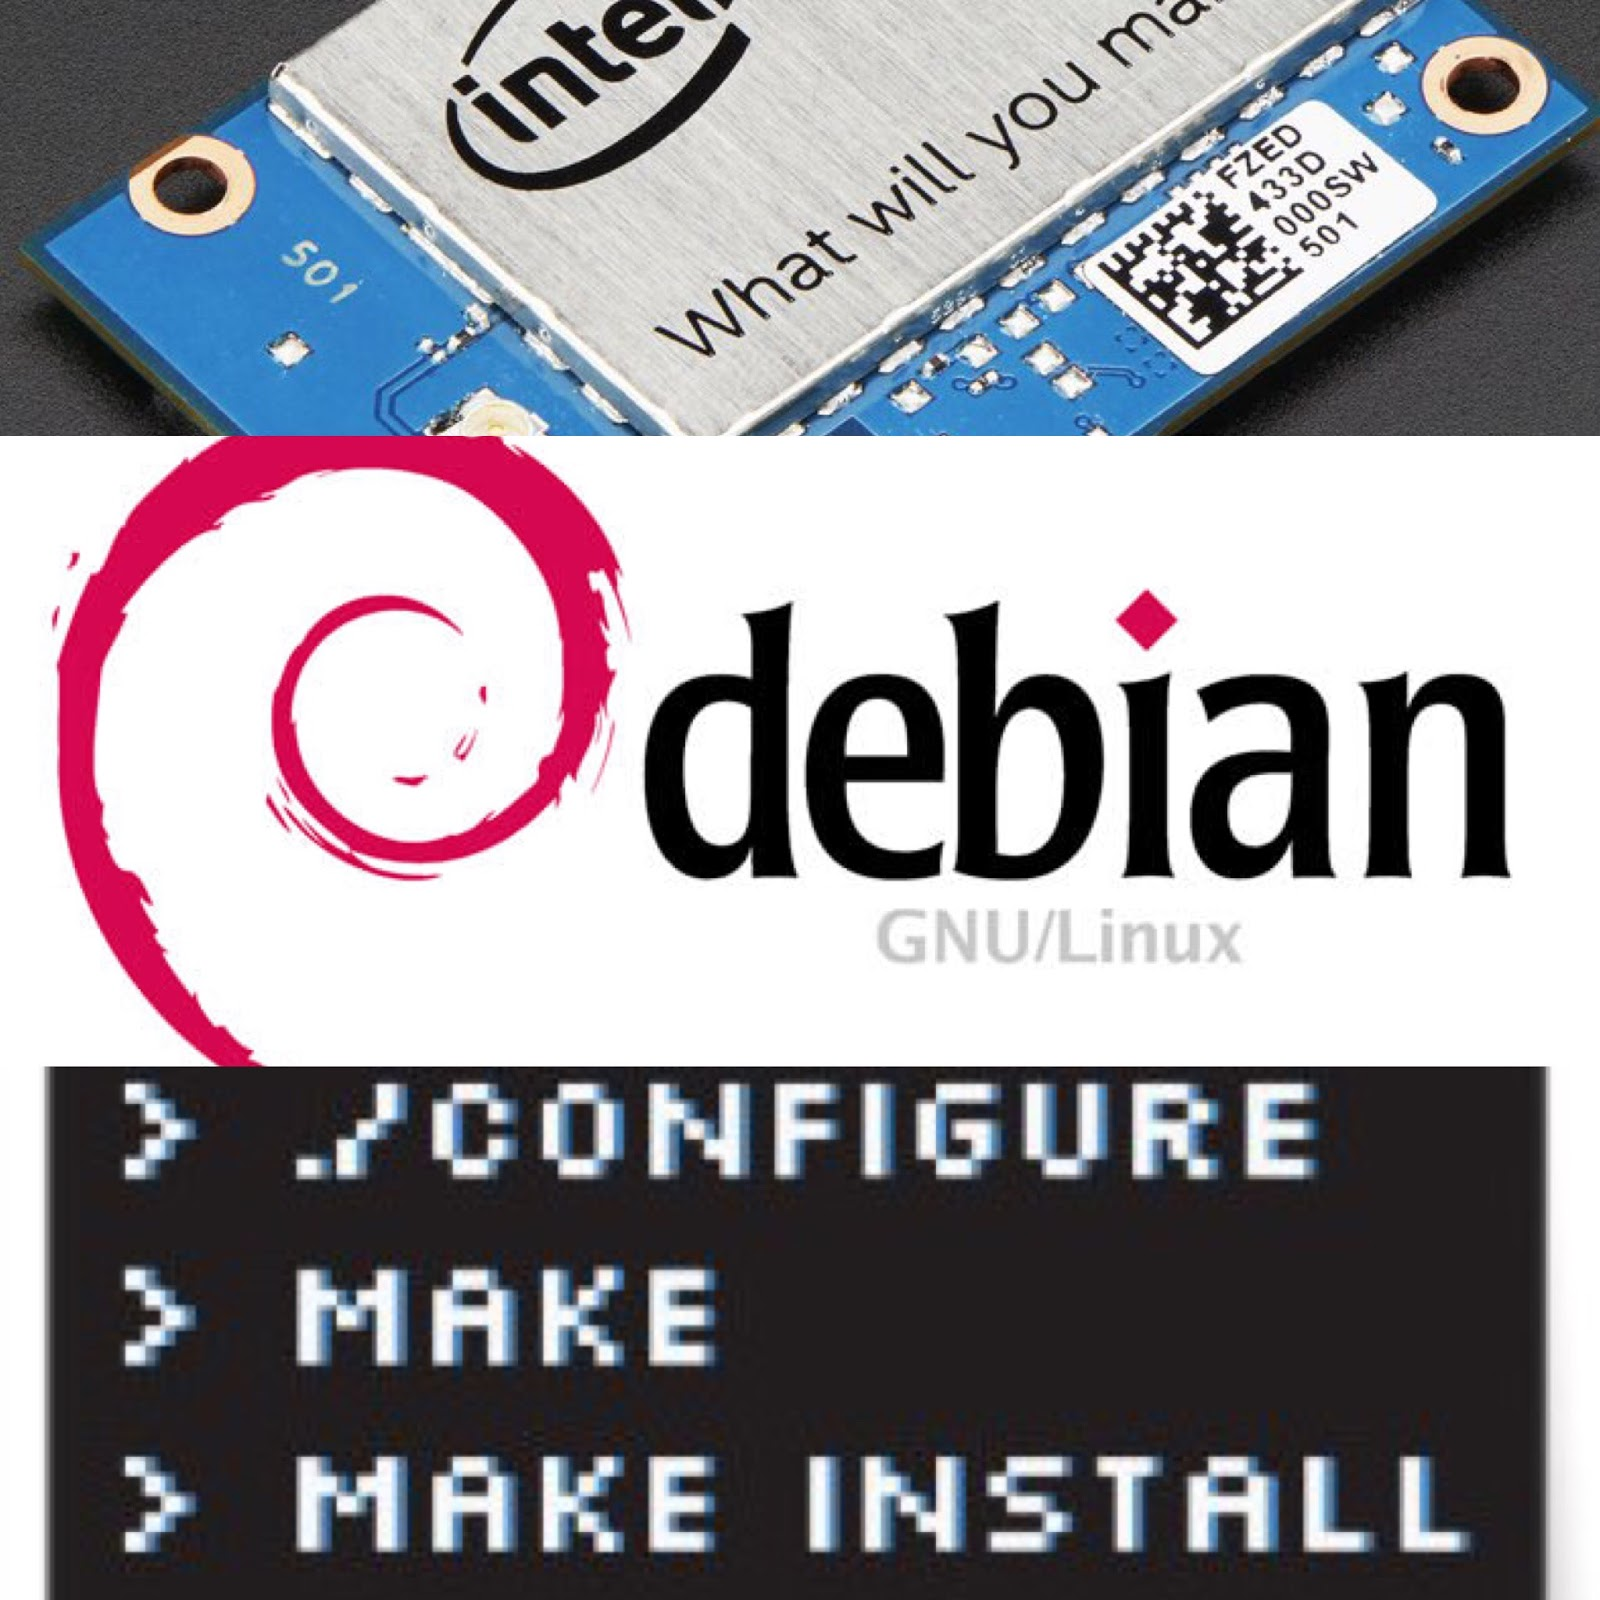 hackgnar: Building Debian Linux for Intel Edison